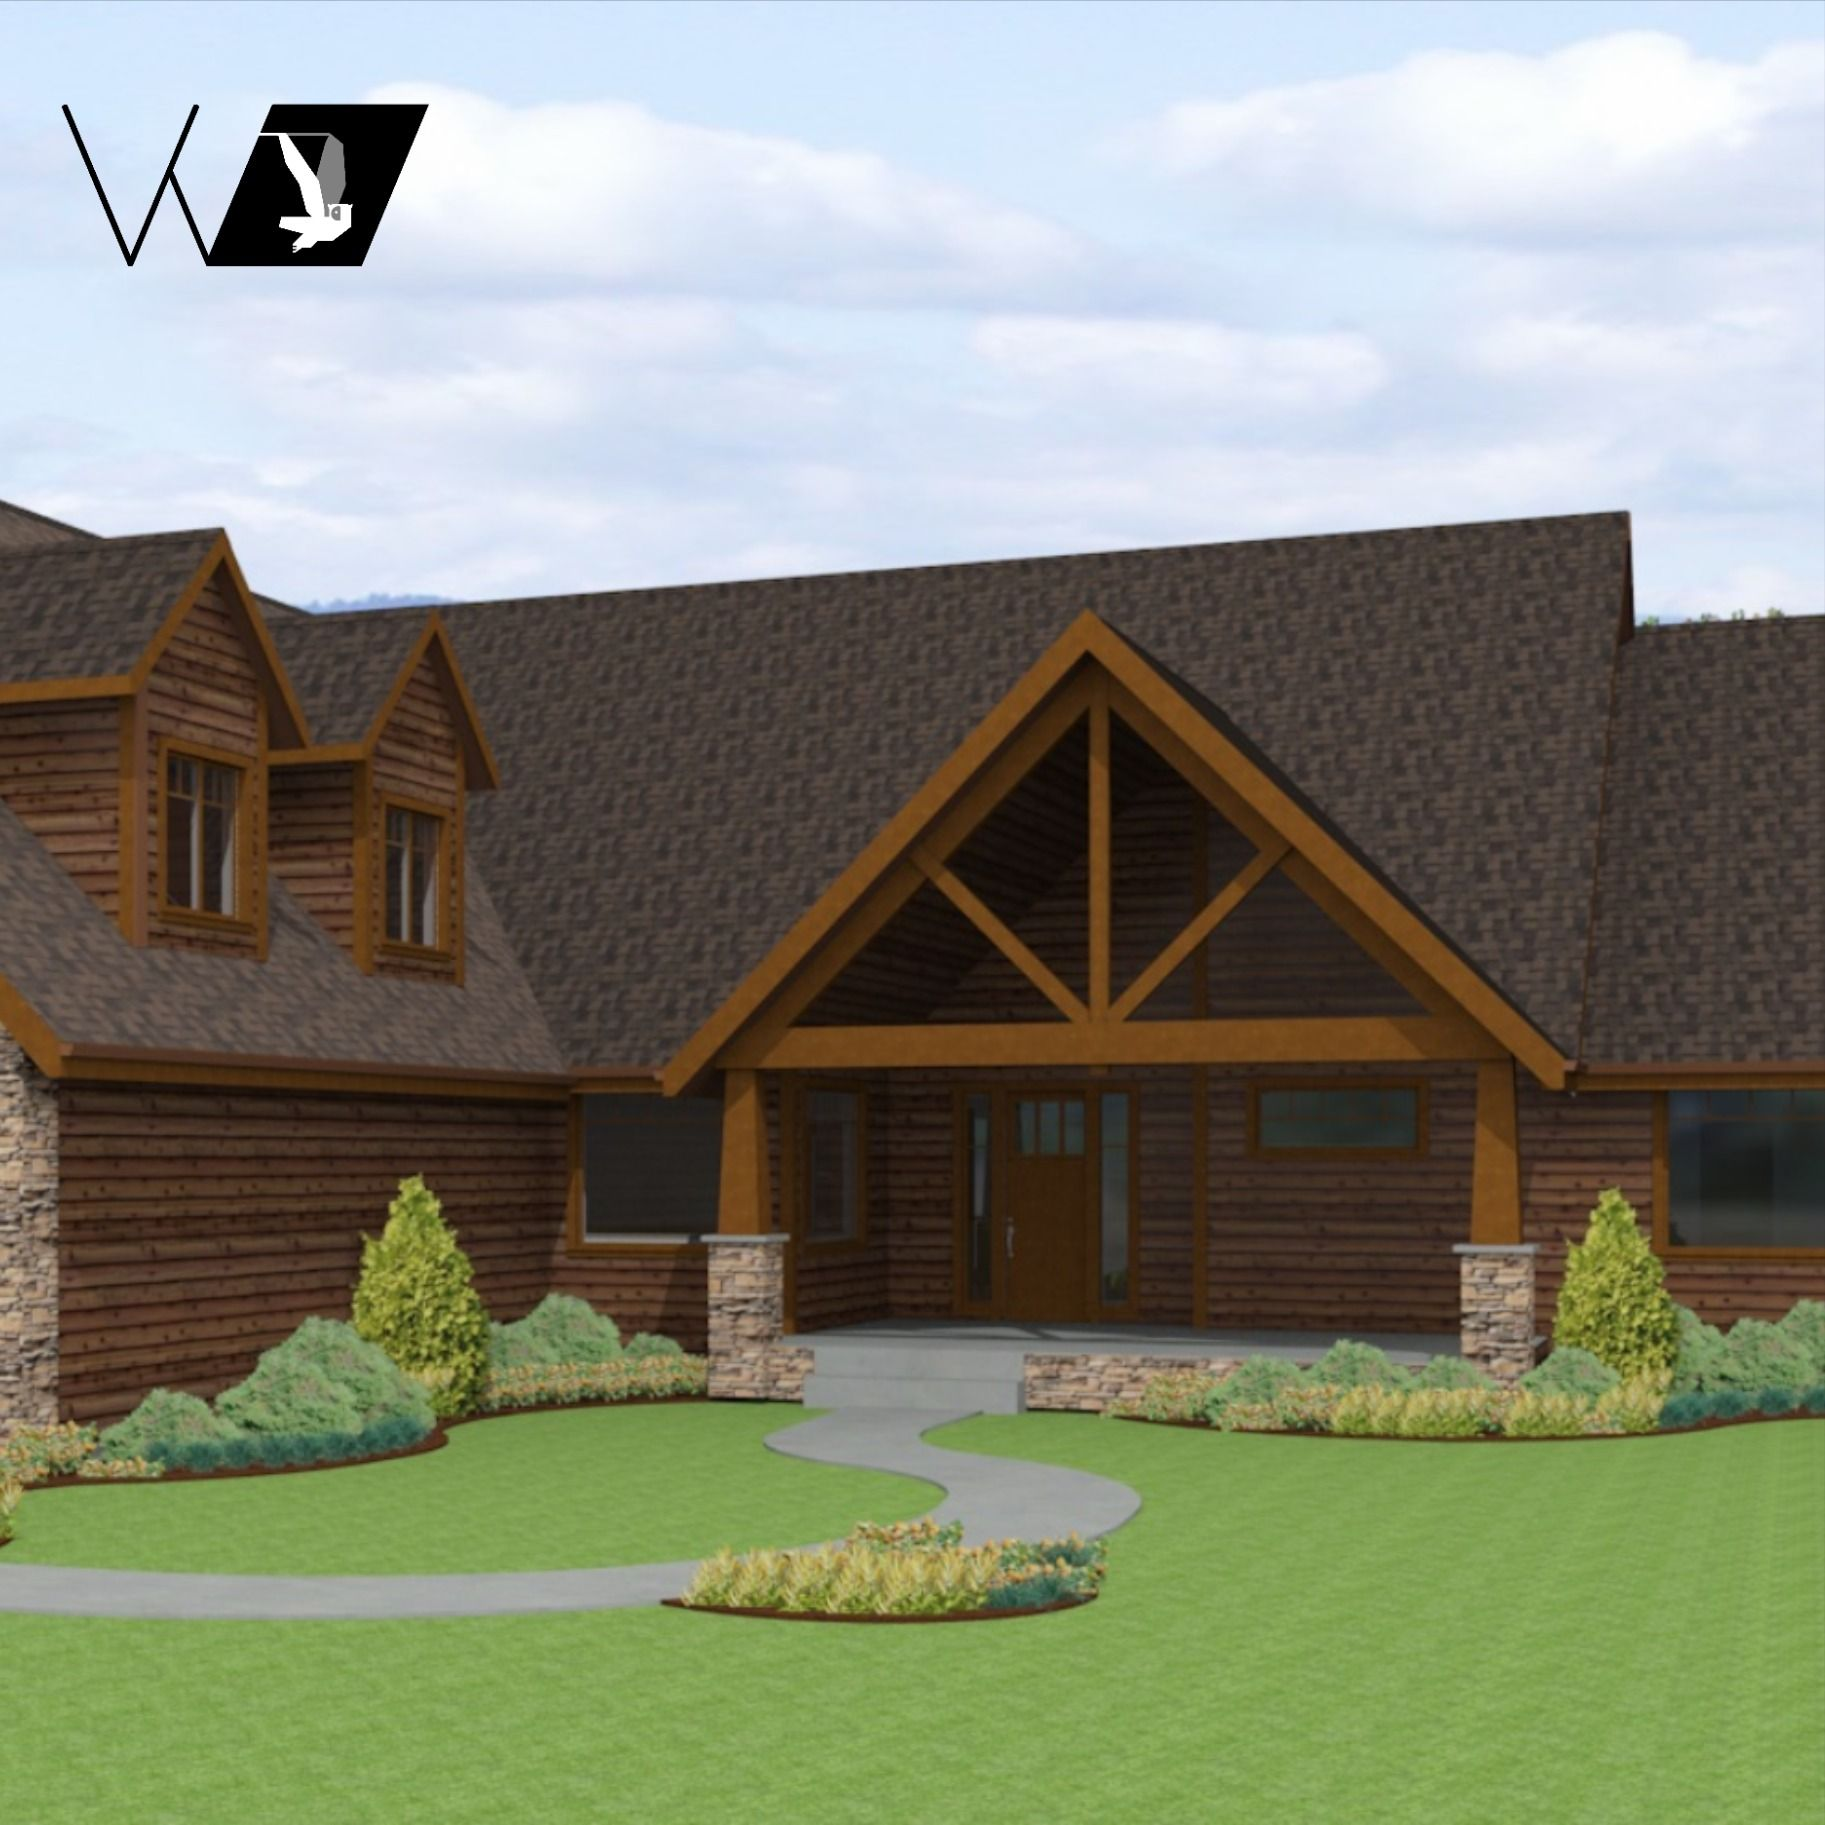 3538zol In 2020 Northwest Style Contemporary Style Homes Floor Plans